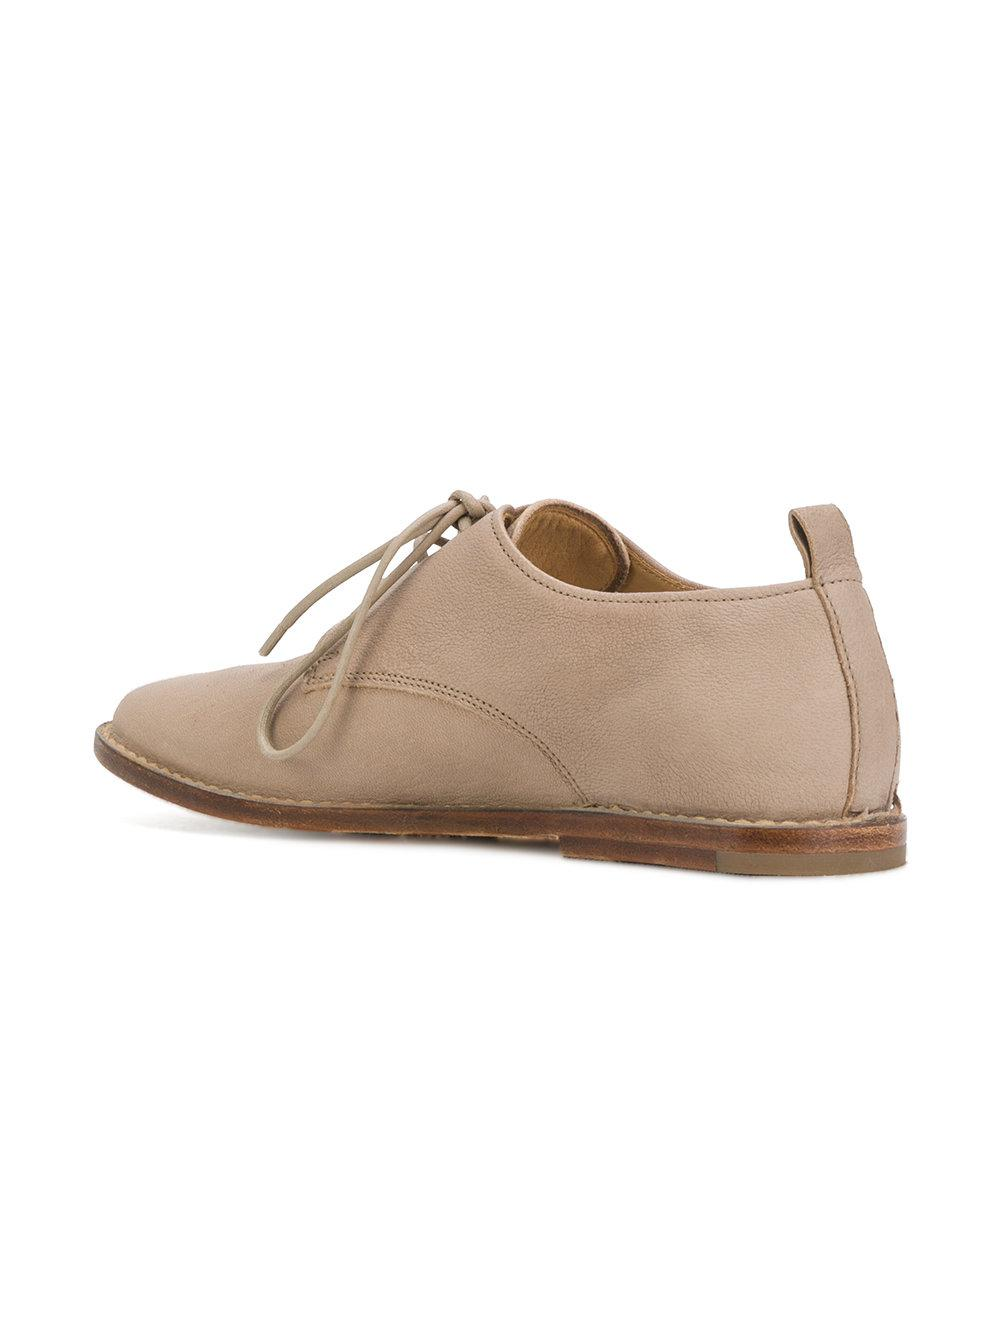 Ines derby shoes - Nude & Neutrals Officine Creative pB0d5T